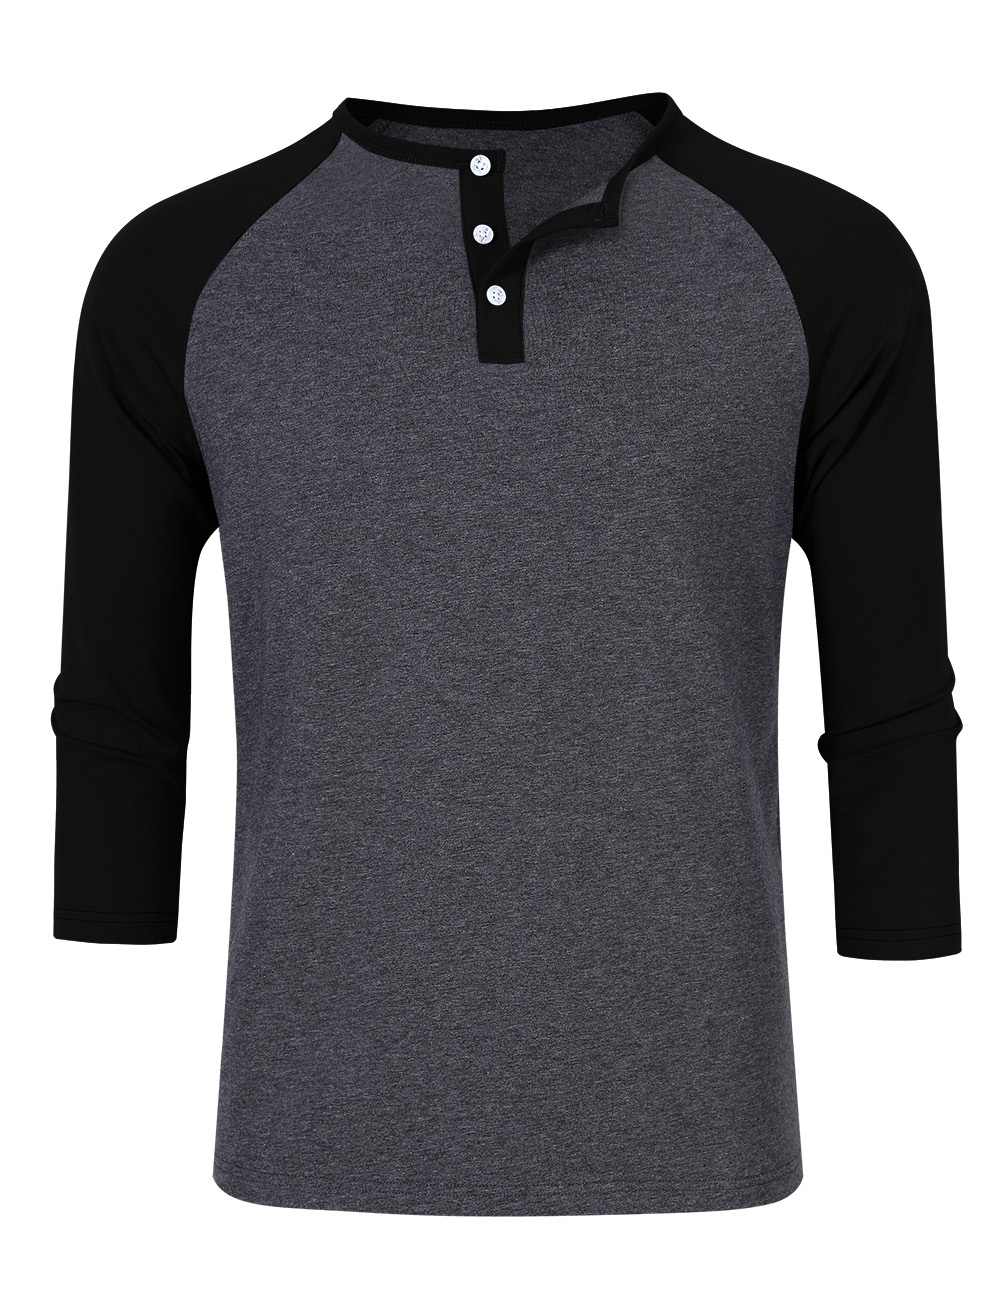 One part henley, one part 3/4 sleeve baseball tee, this All-Star features a three button collar and contrast sleeve stripes to carry you through every on and off the field .